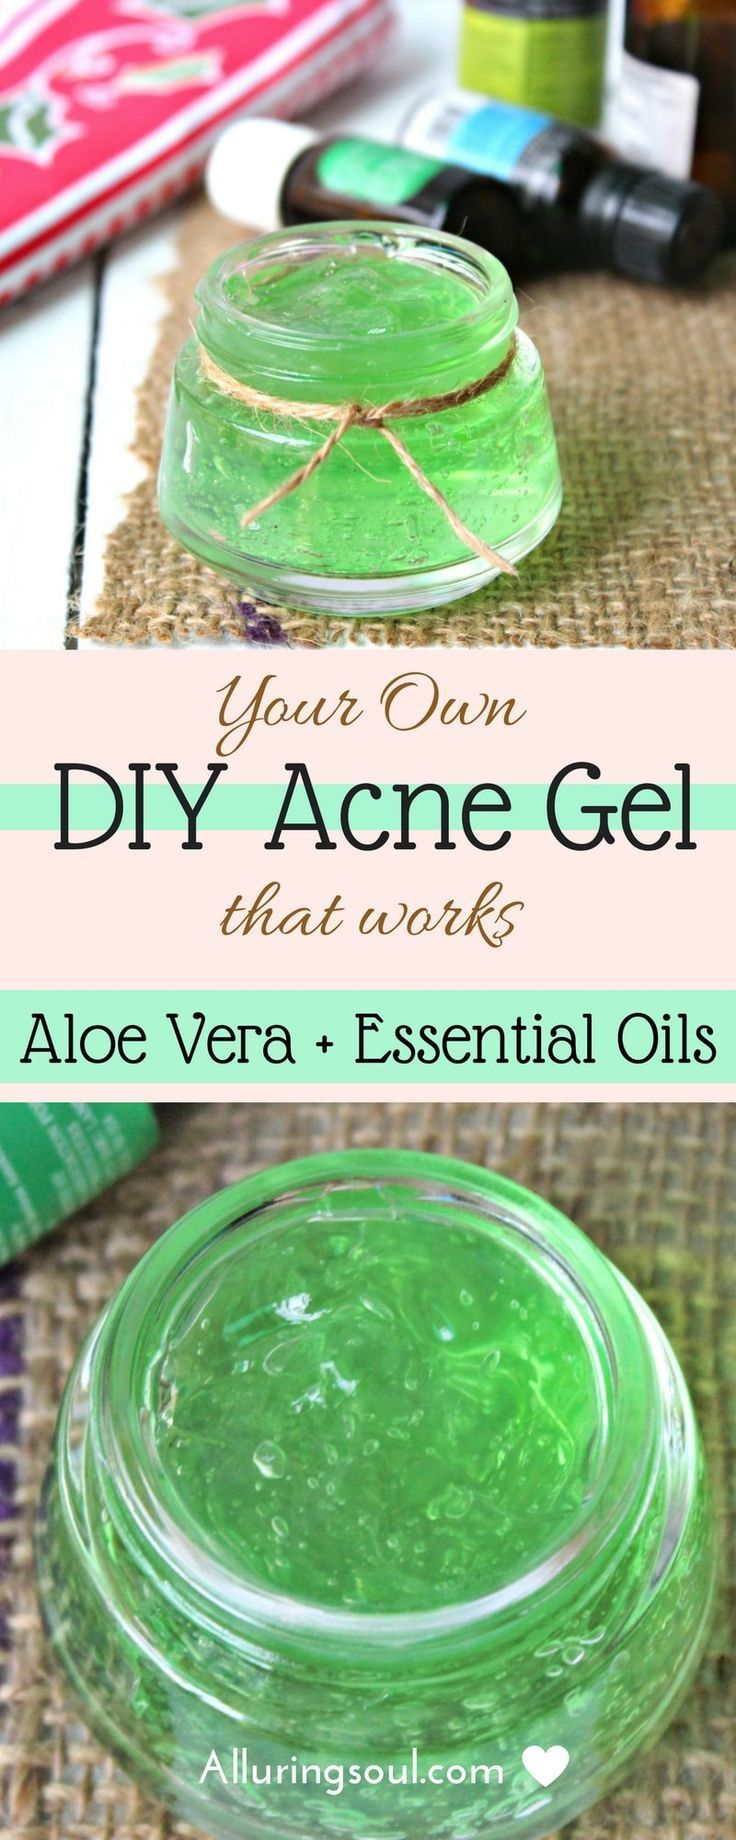 Your Own DIY Acne Gel That Works